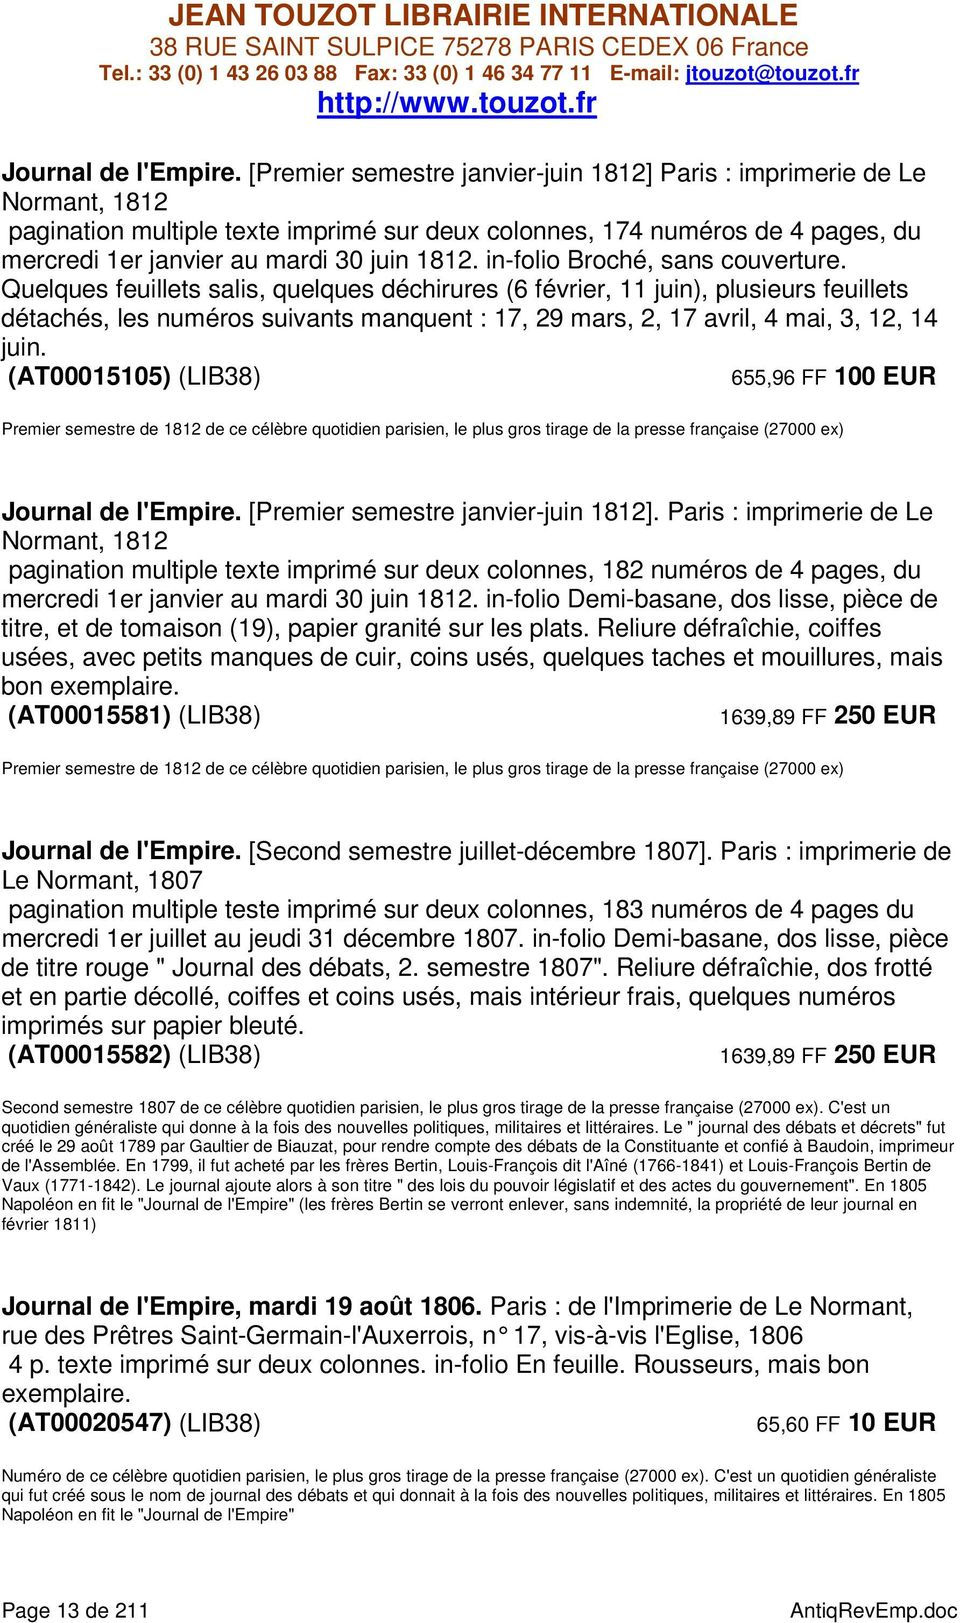 in-folio Broché, sans couverture.